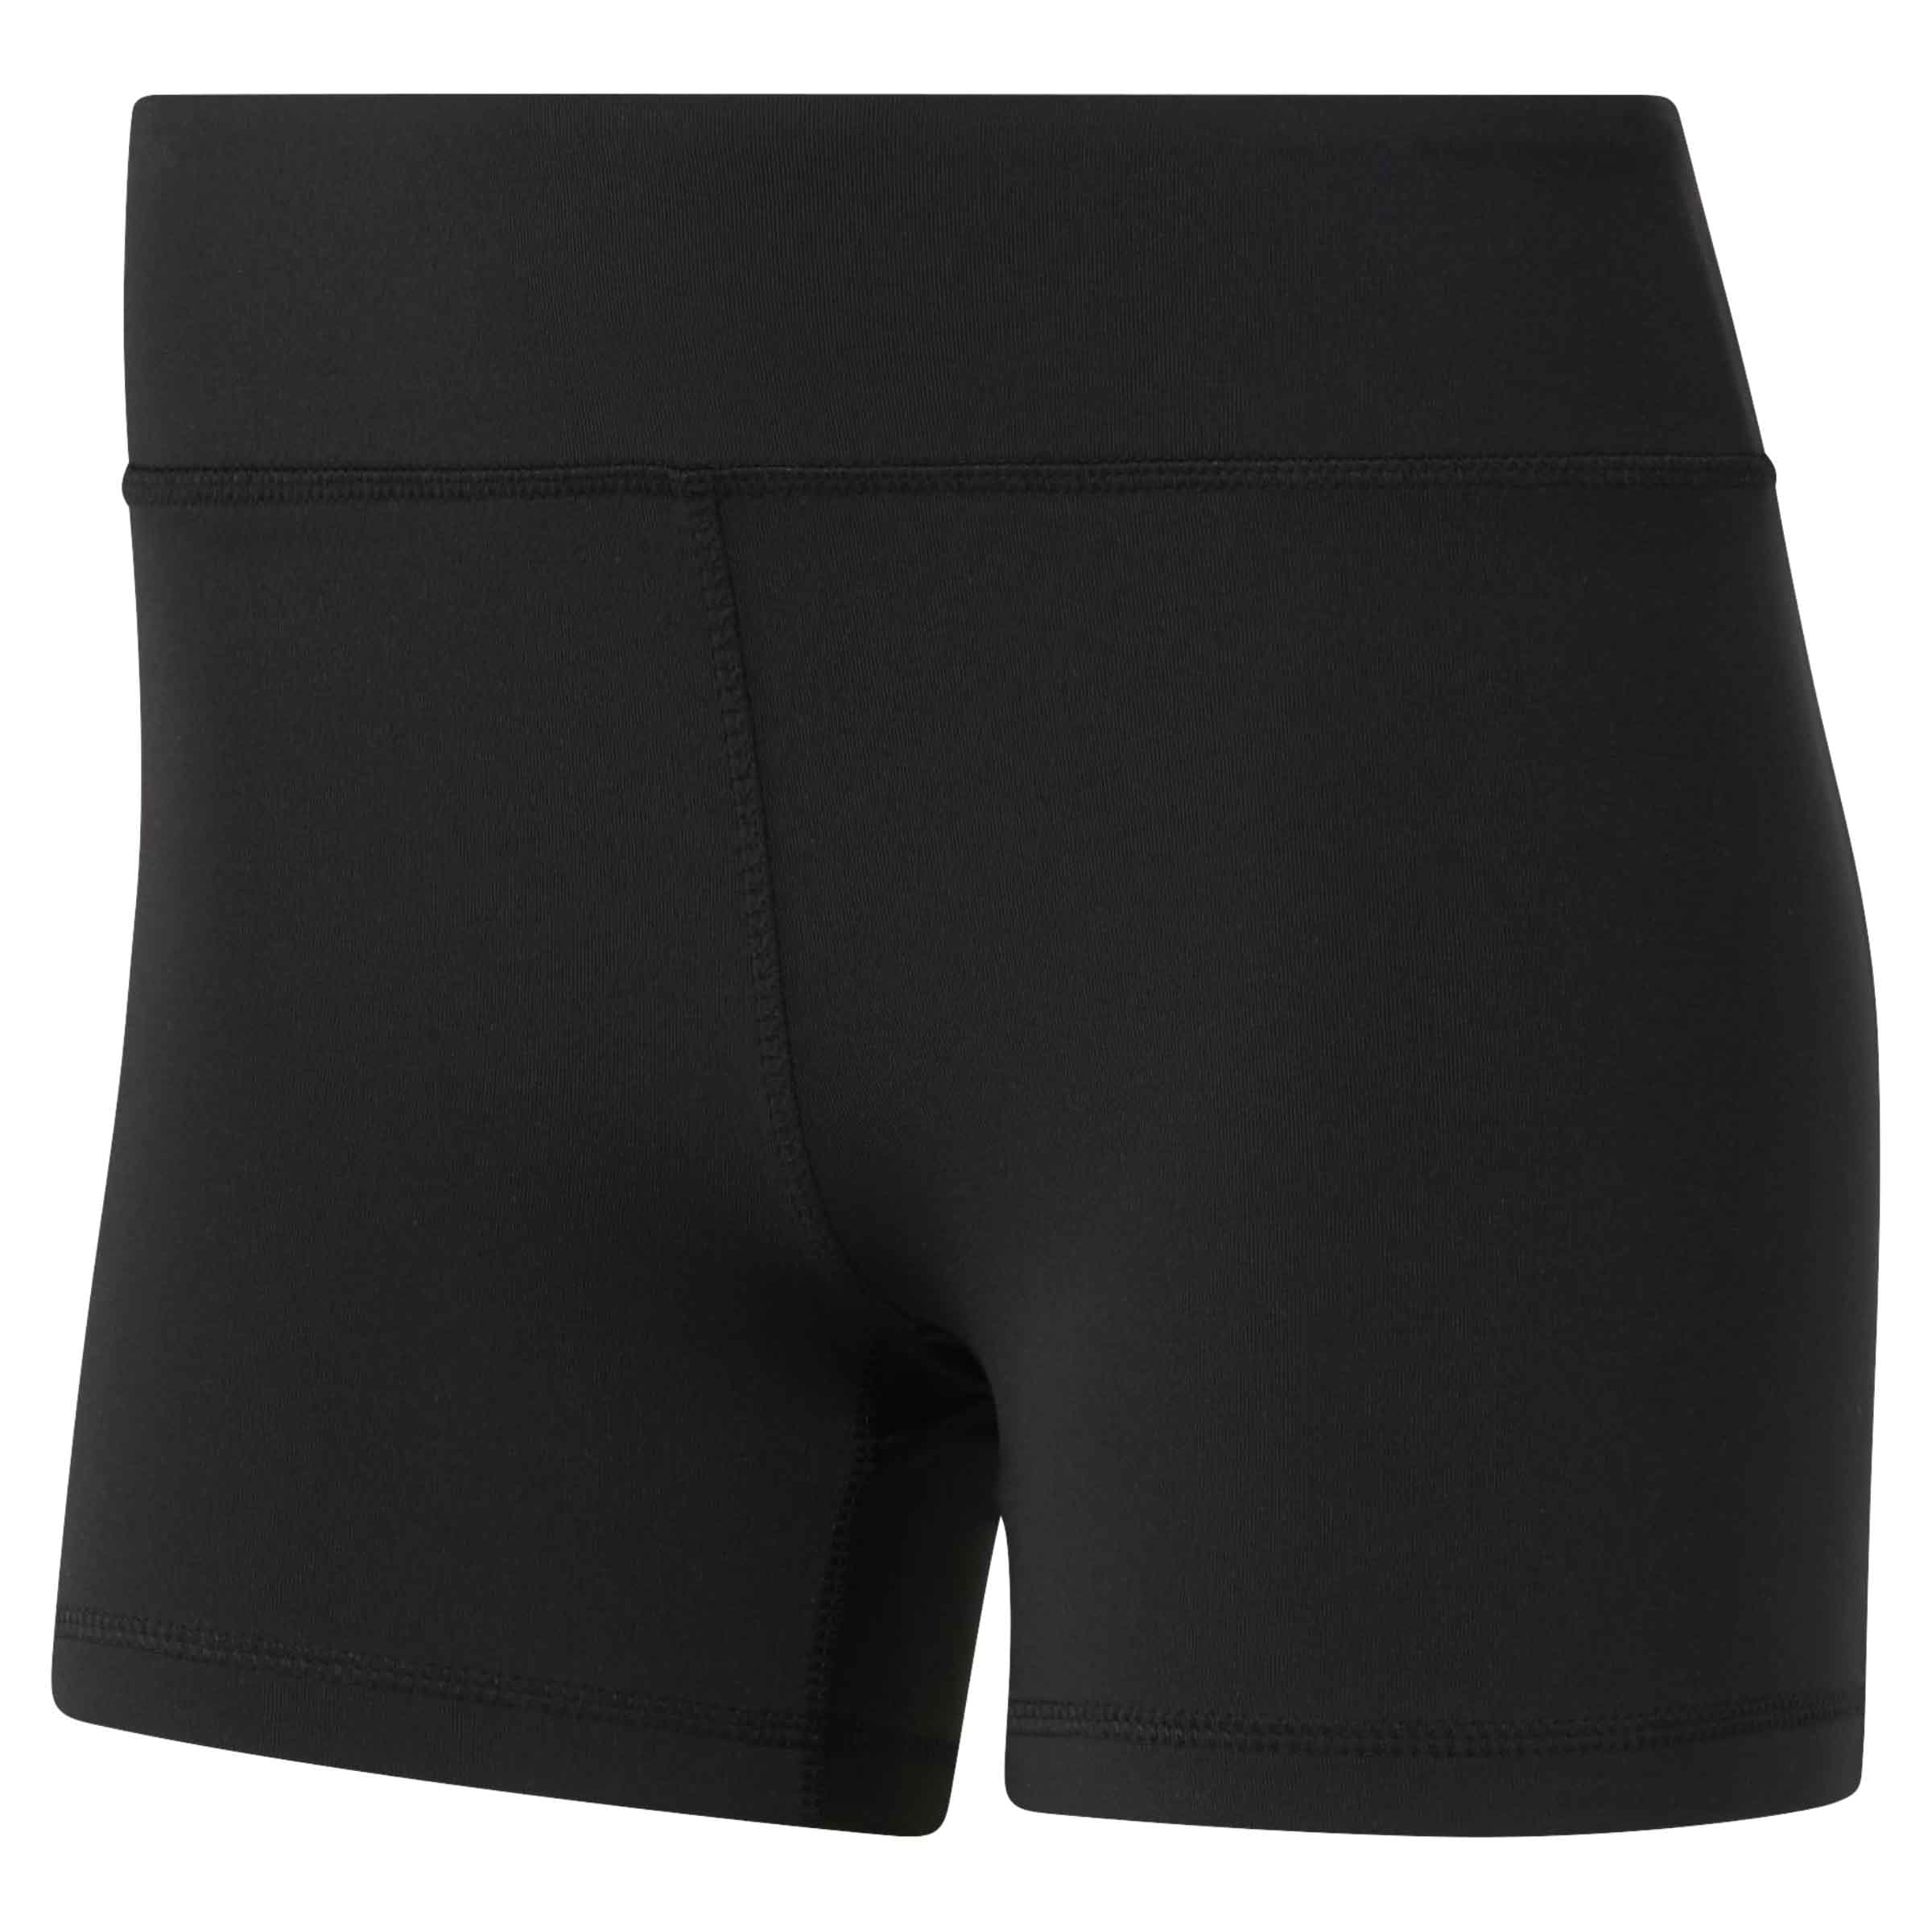 crossfit-shorts-chase-bootie-short